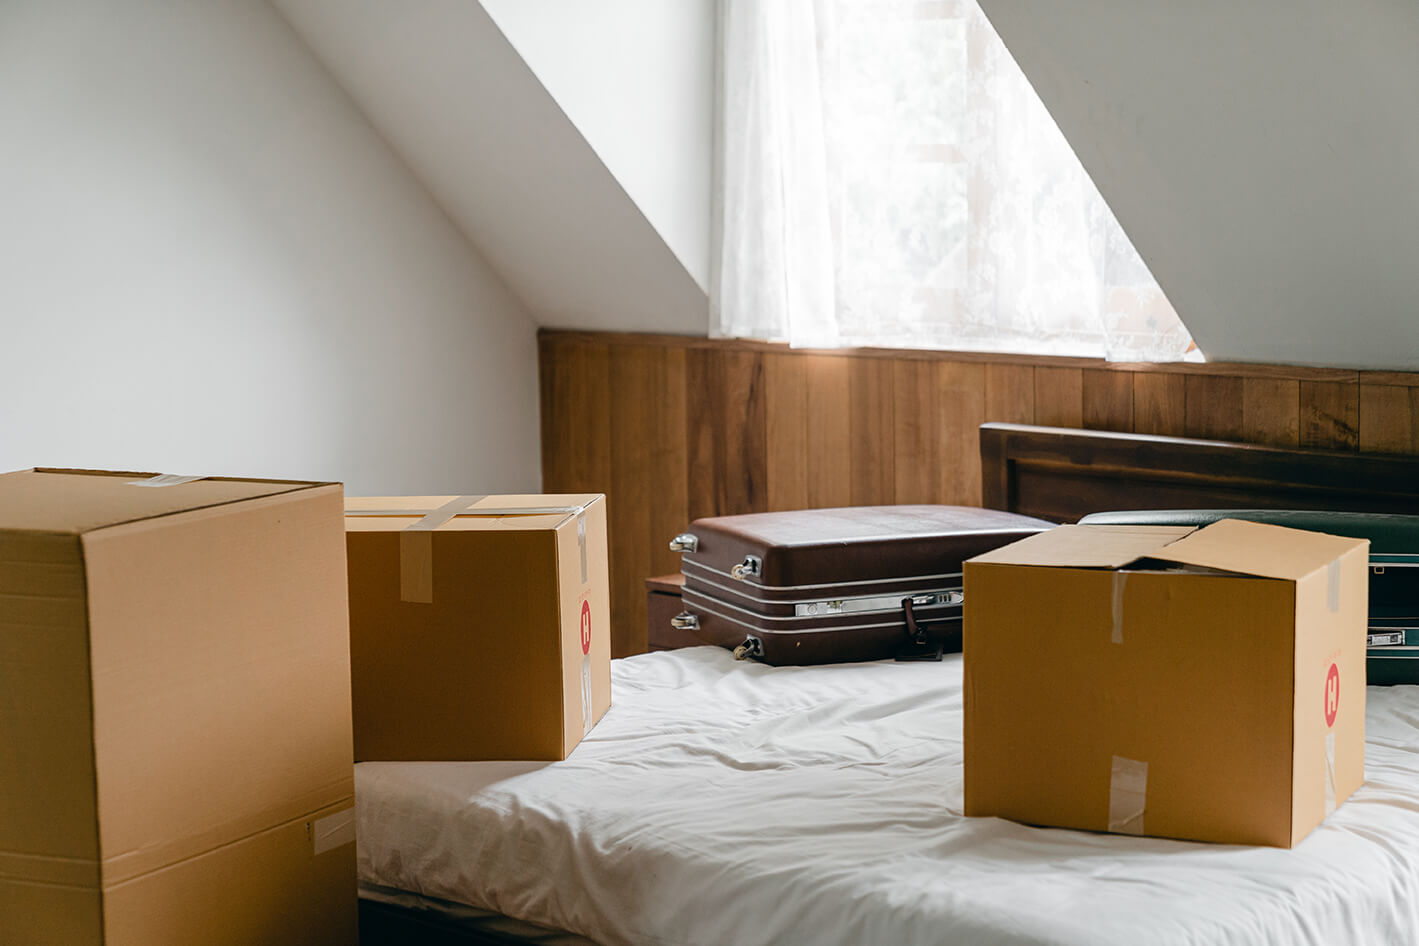 carton-boxes-and-suitcases-placed-on-bed-in-empty-light-room-4246100